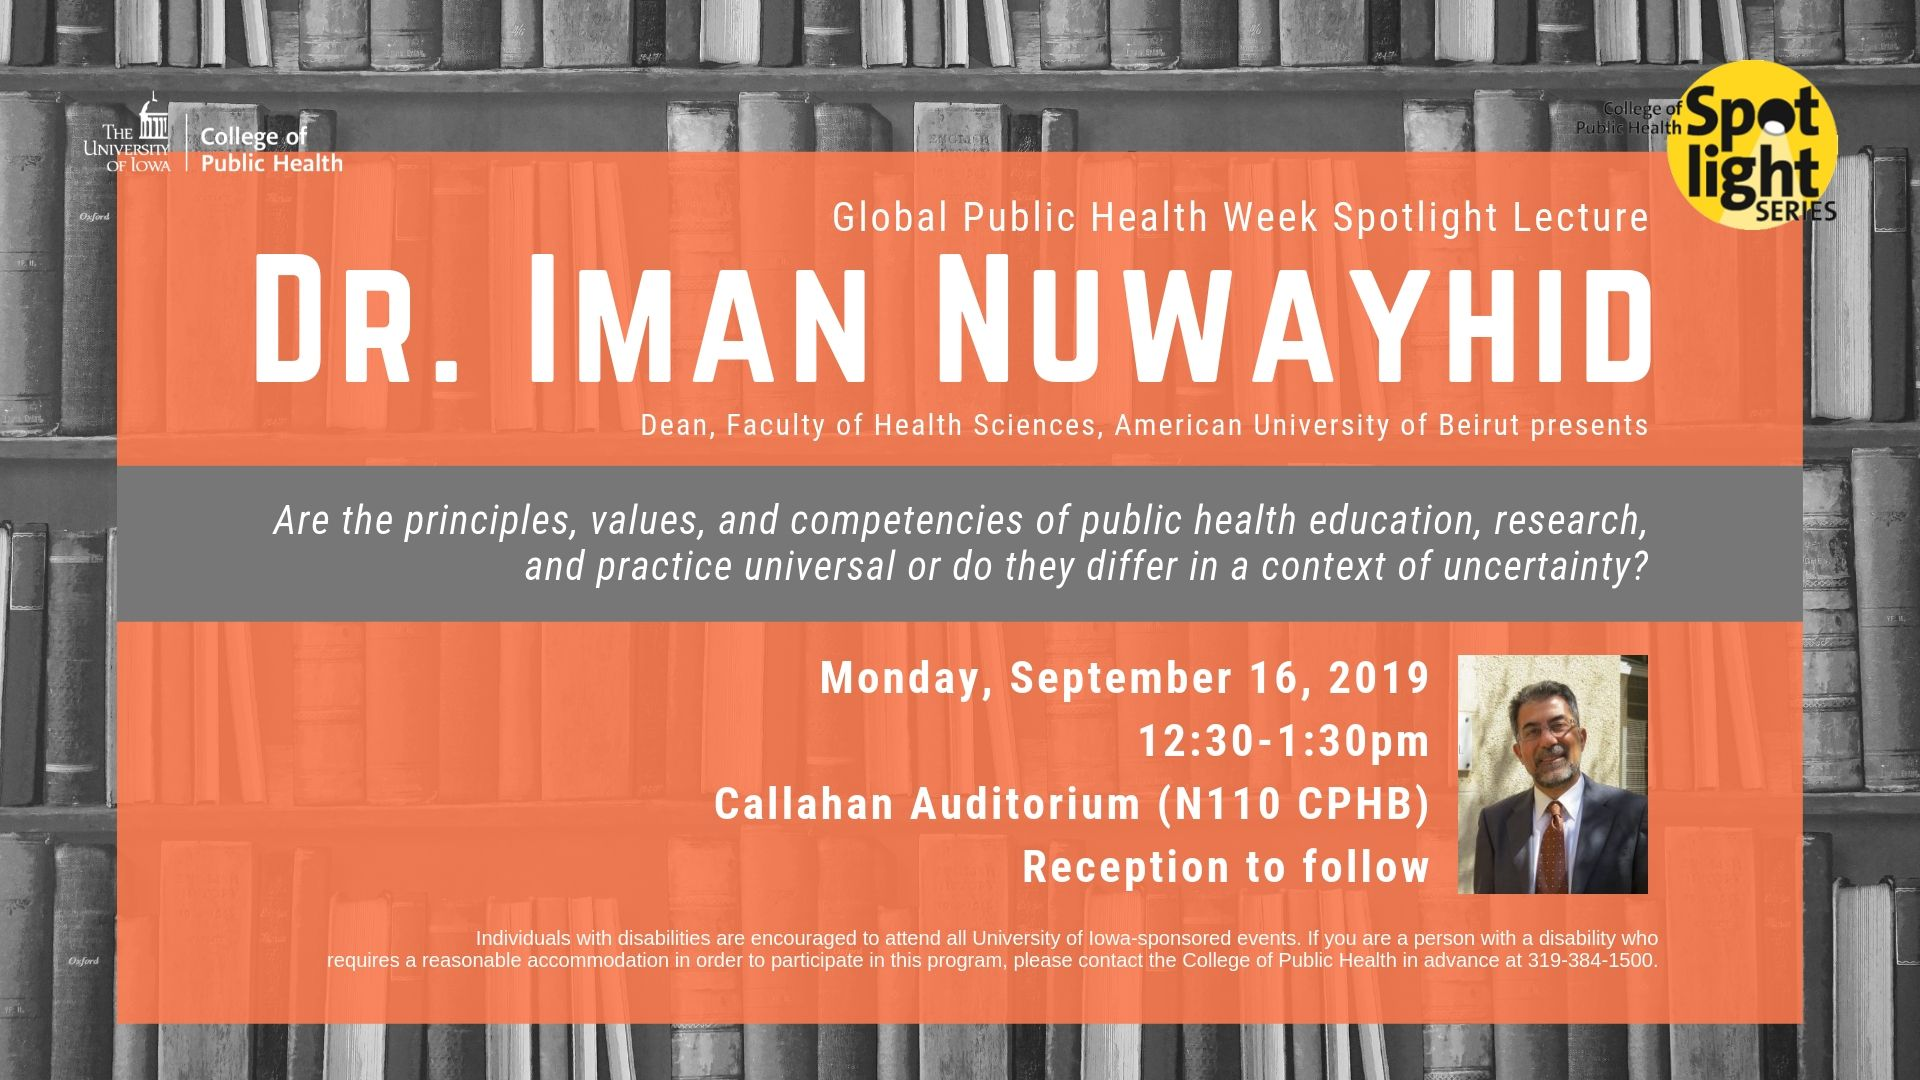 Global Public Health Week Spotlight Lecture Dr. Iman Nuwayhid